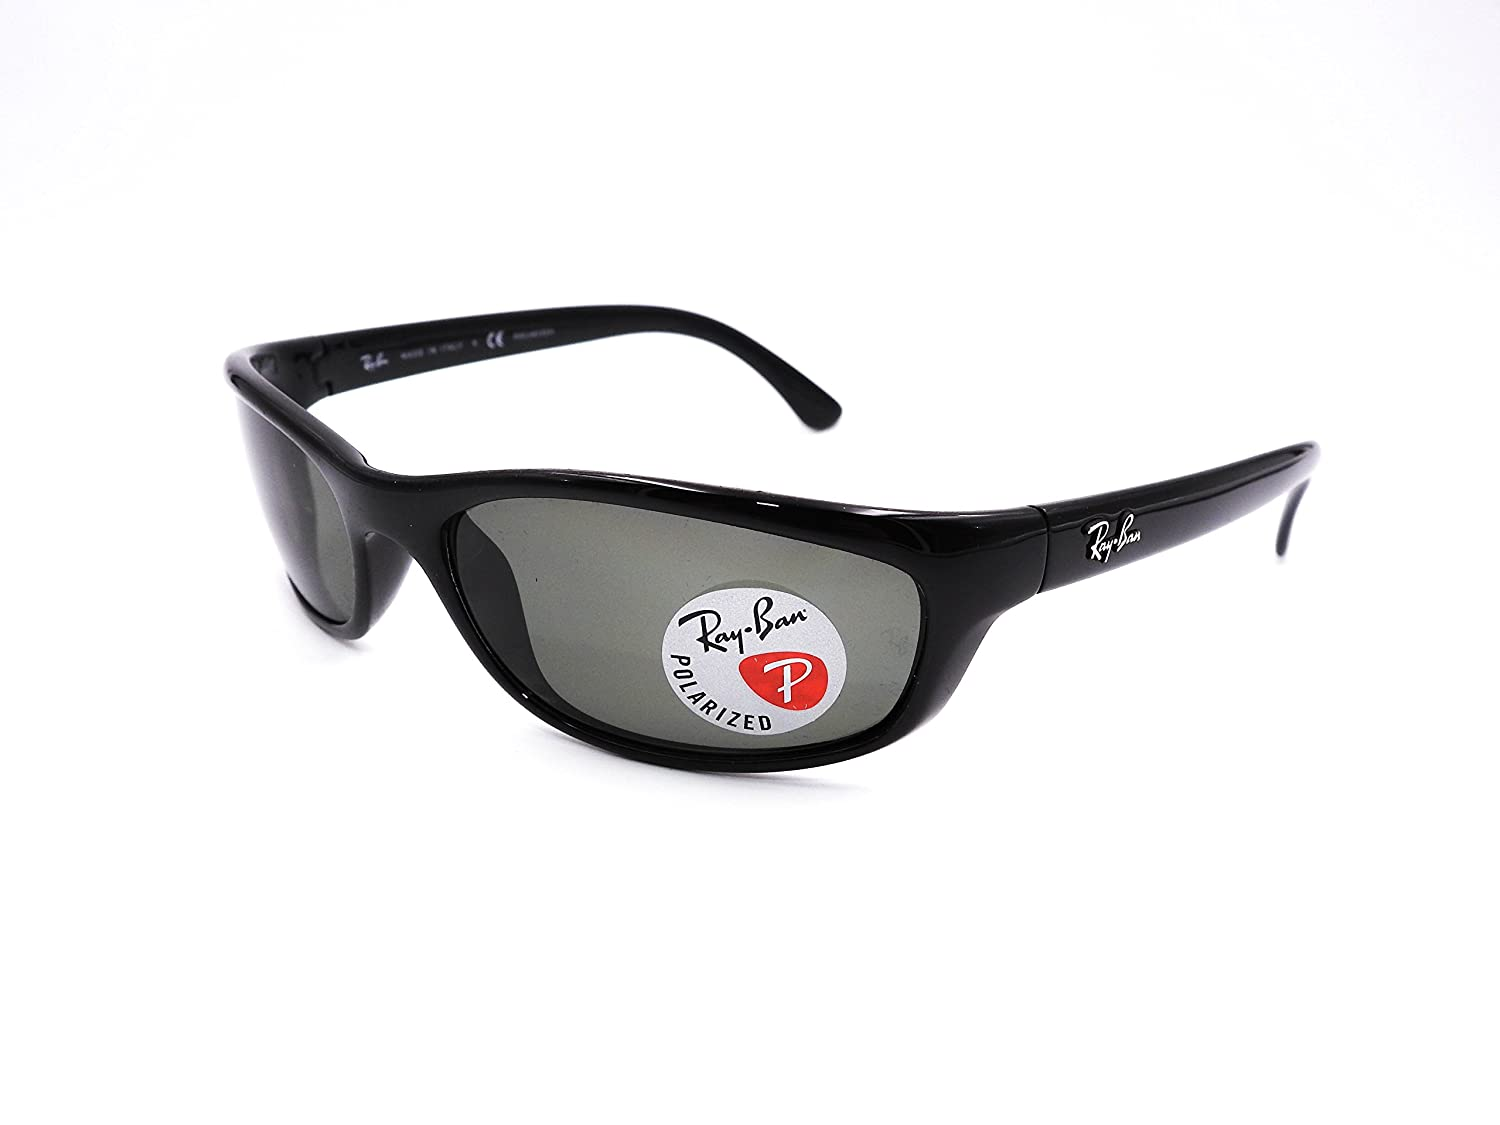 f178a6889e Amazon.com  Ray-Ban RB4115 - 601 9A Sunglasses Black w  Polarized  Grey-Green Lens 57mm  Clothing